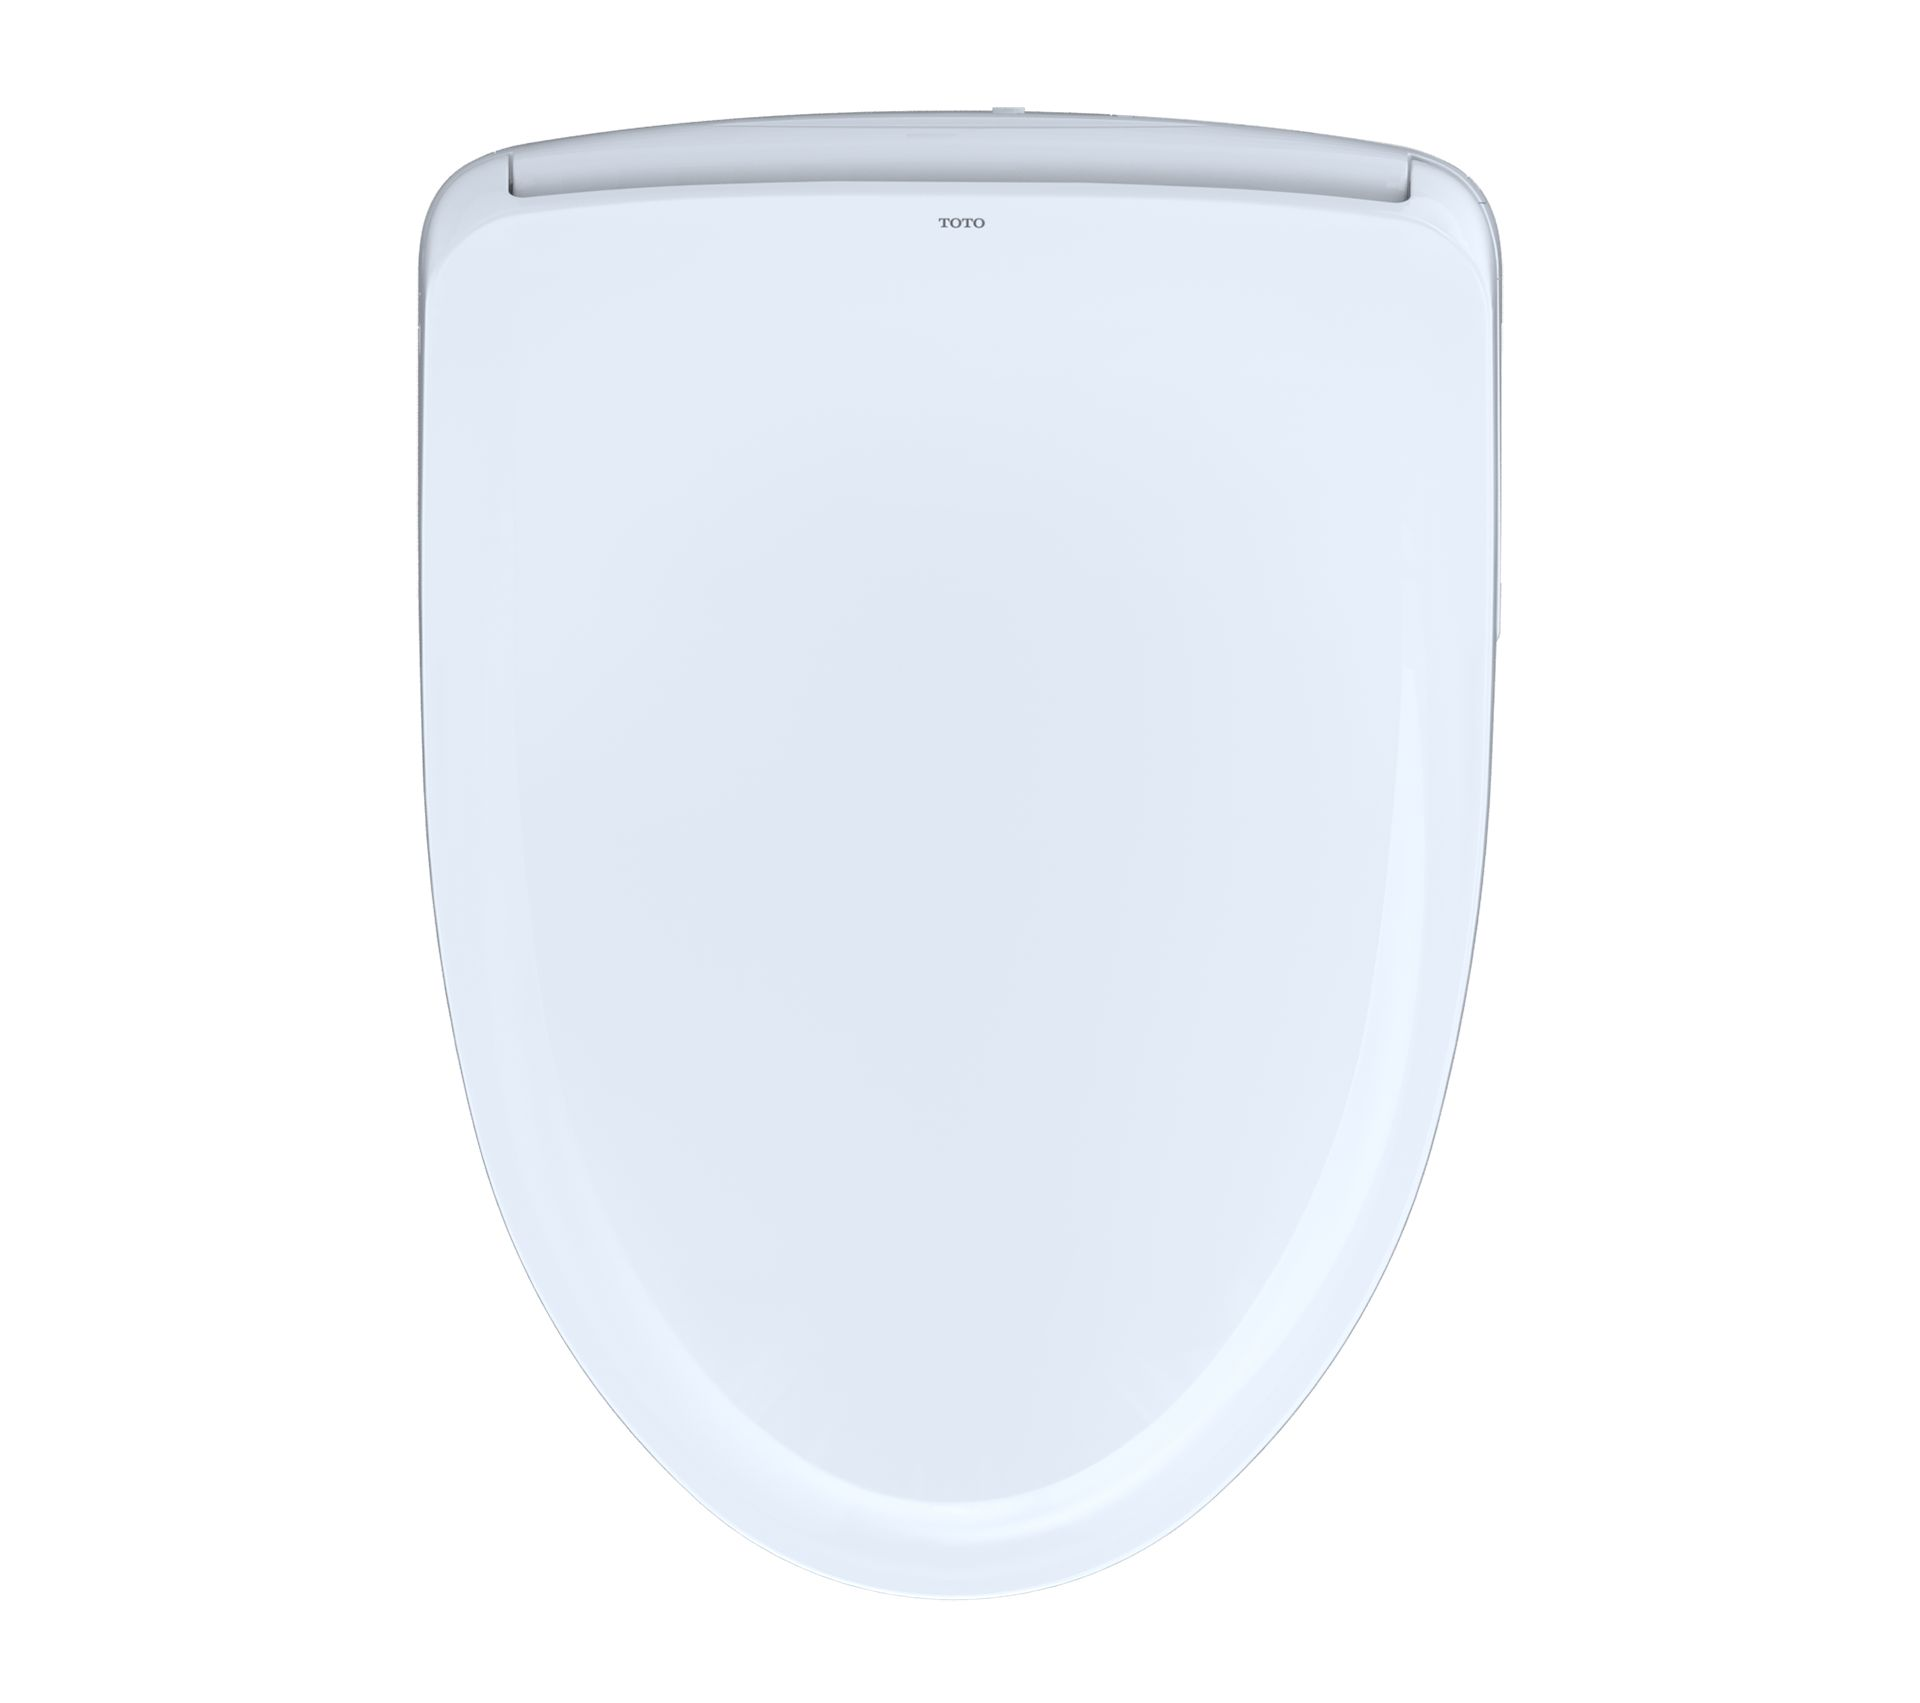 Washlet® S500e - Classic - Elongated with ewater+ - TotoUSA.com